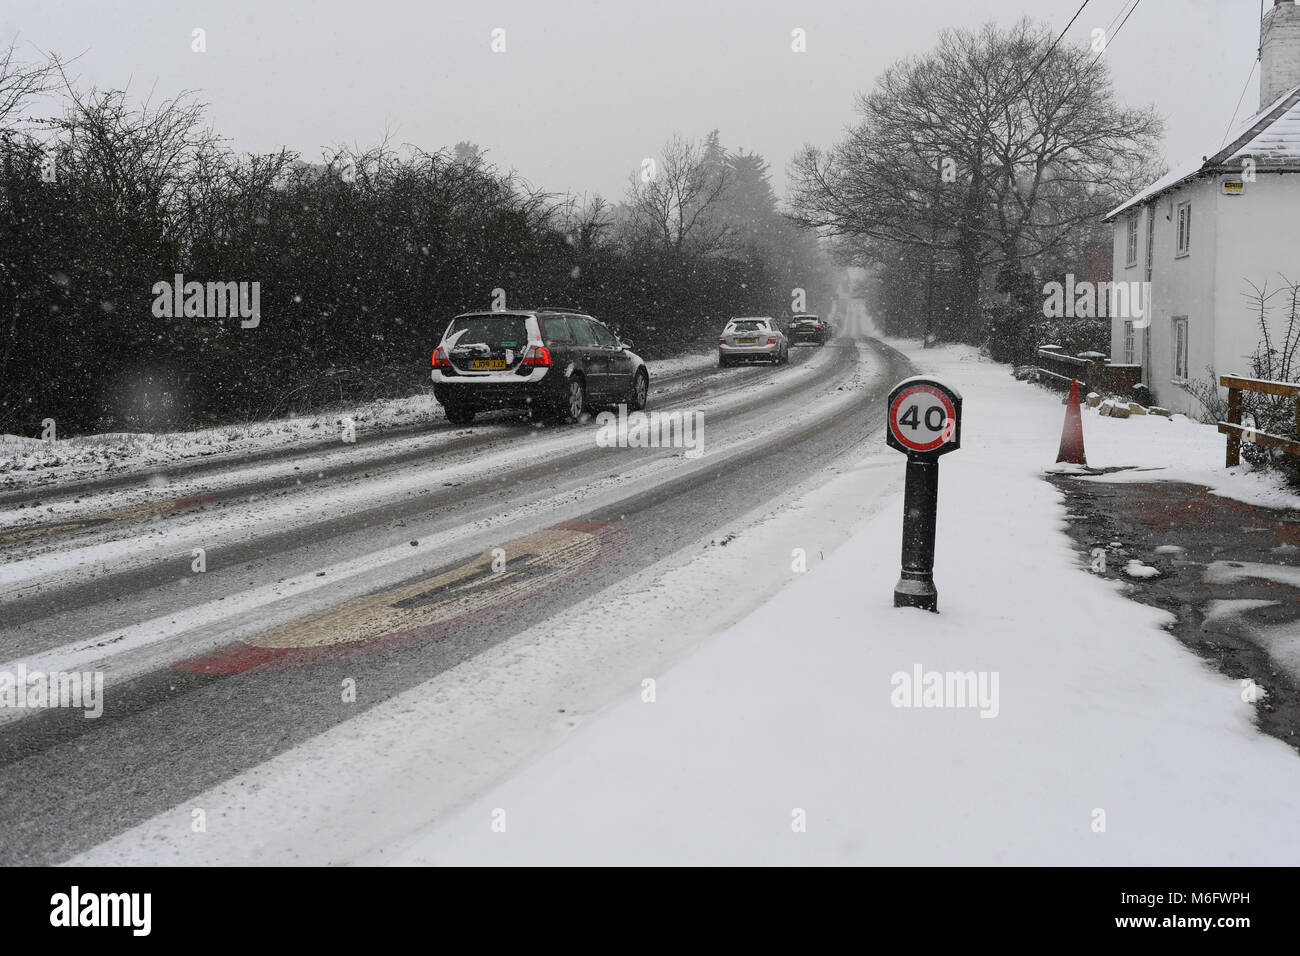 Snow covered 40mph sign on the A36 towards Salisbury England in tricky driving conditions in the snow of March 2018. - Stock Image